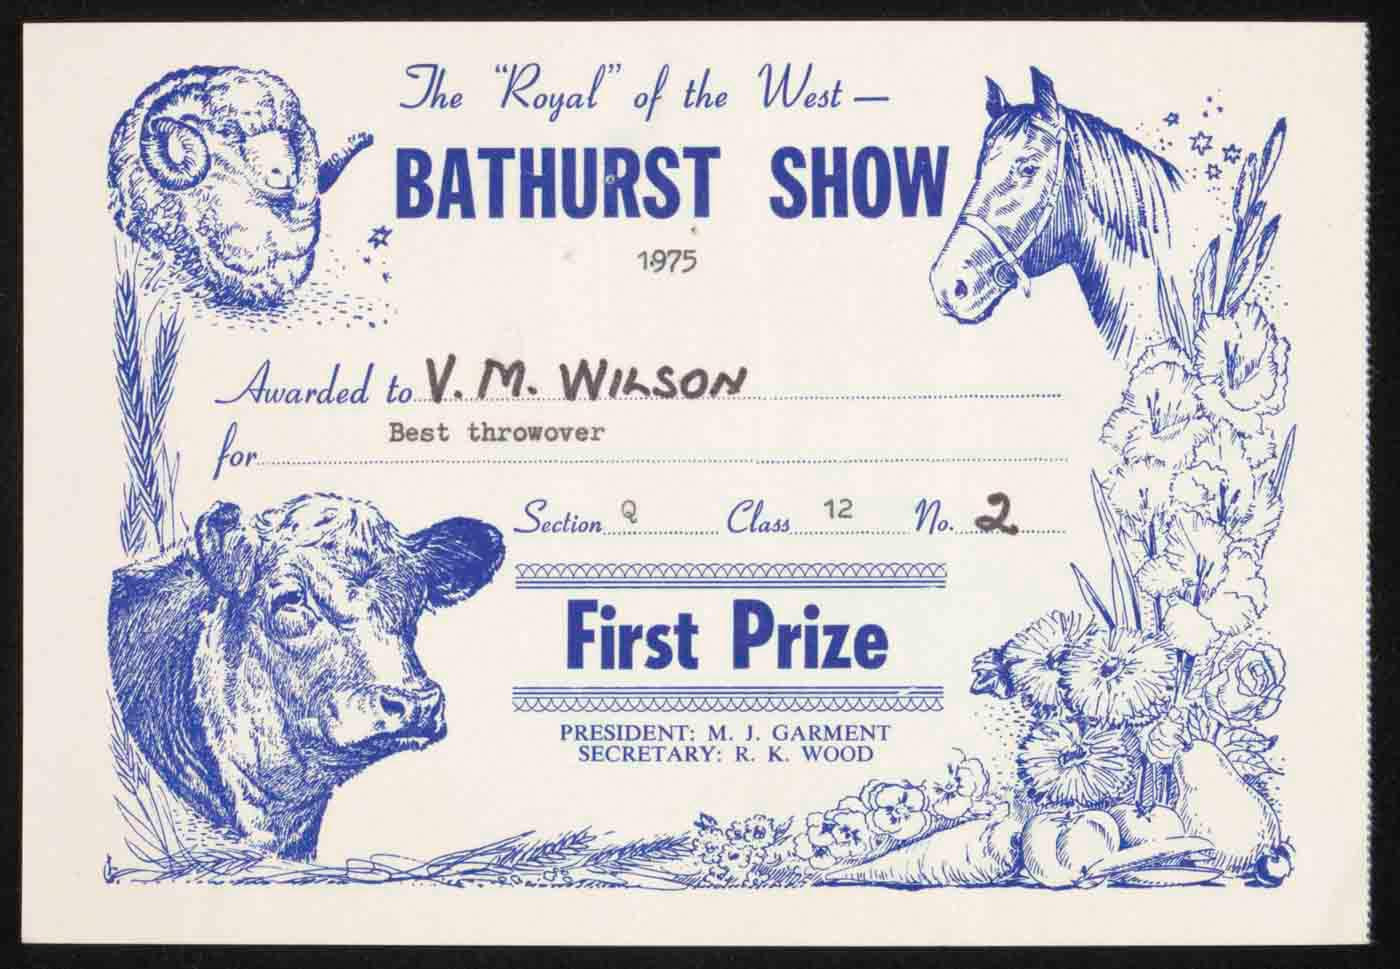 Bathurst show first prize certificate - click to view larger image